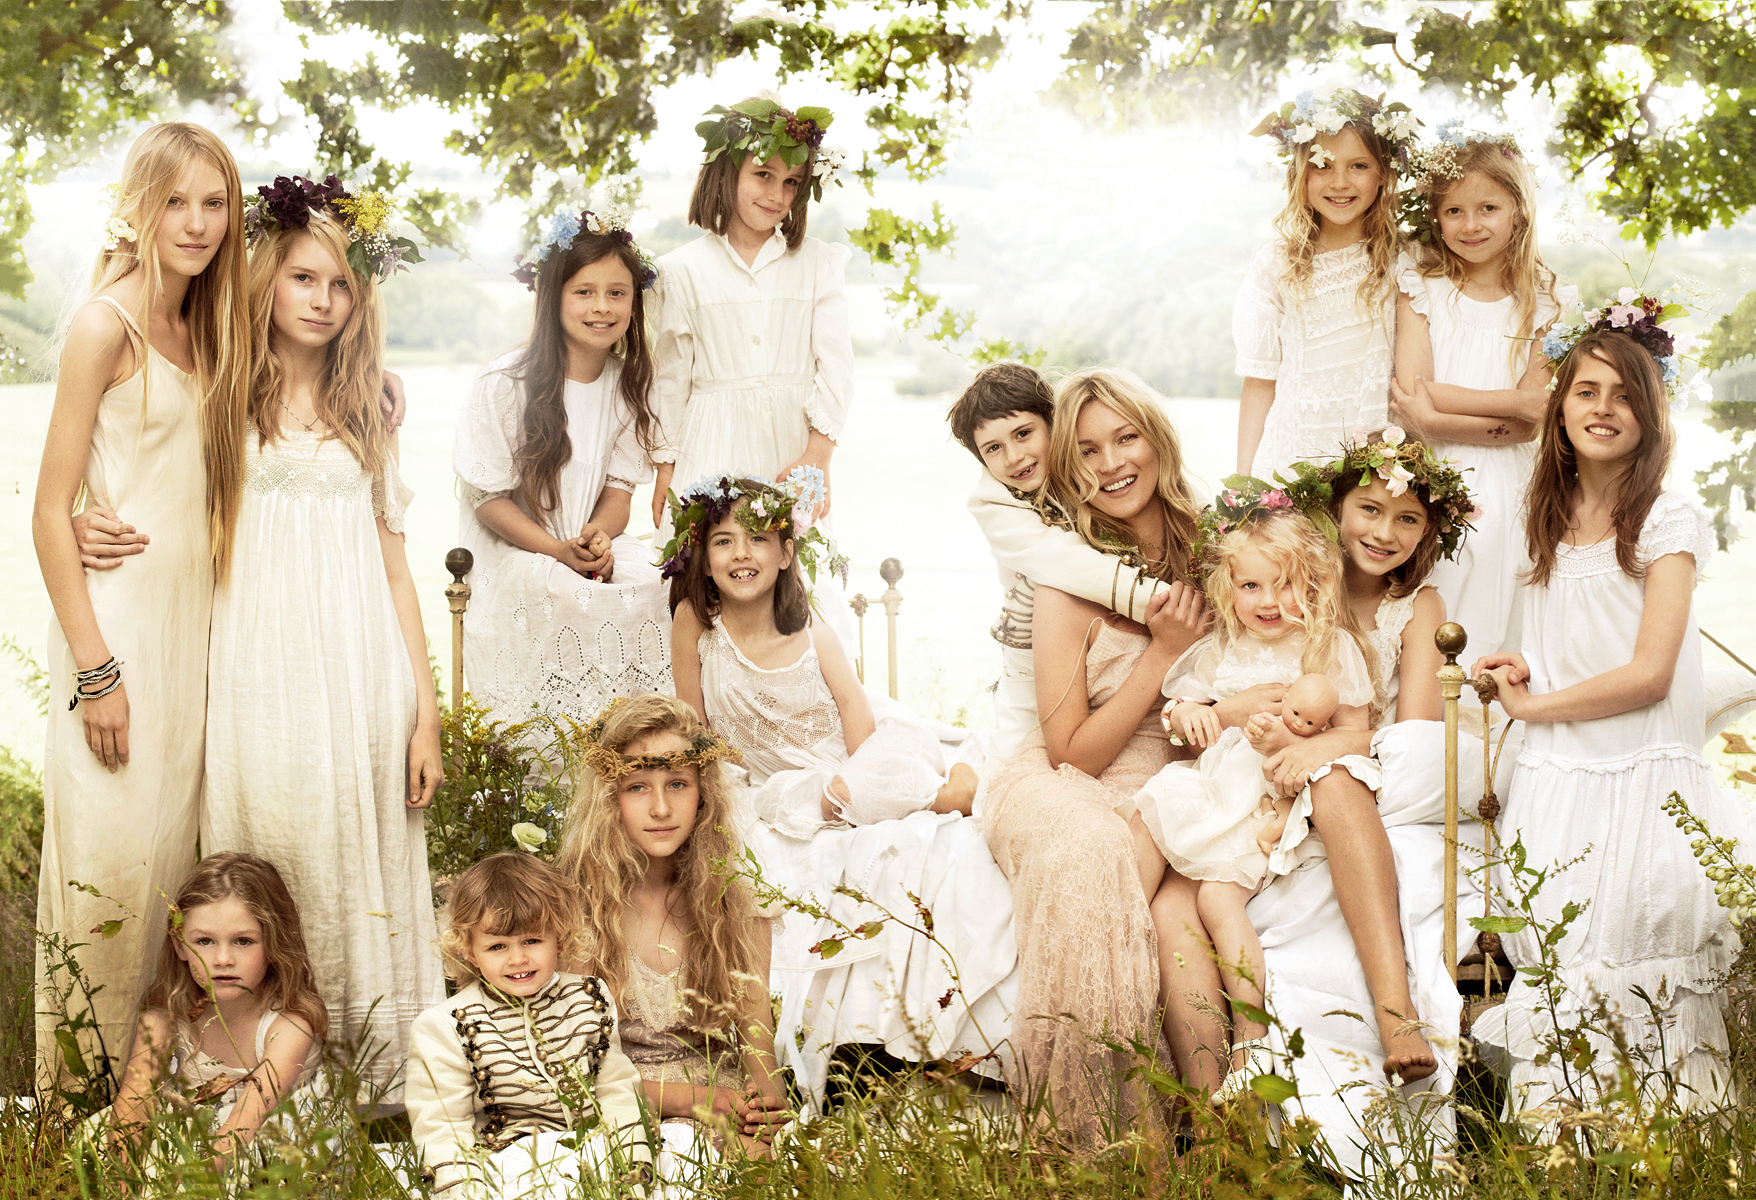 The most dreamy of wedding photos, an enchanted vision of Kate with her page boys and 14 flowers girls dress in silk and delicate eyelet petticoat dresses,